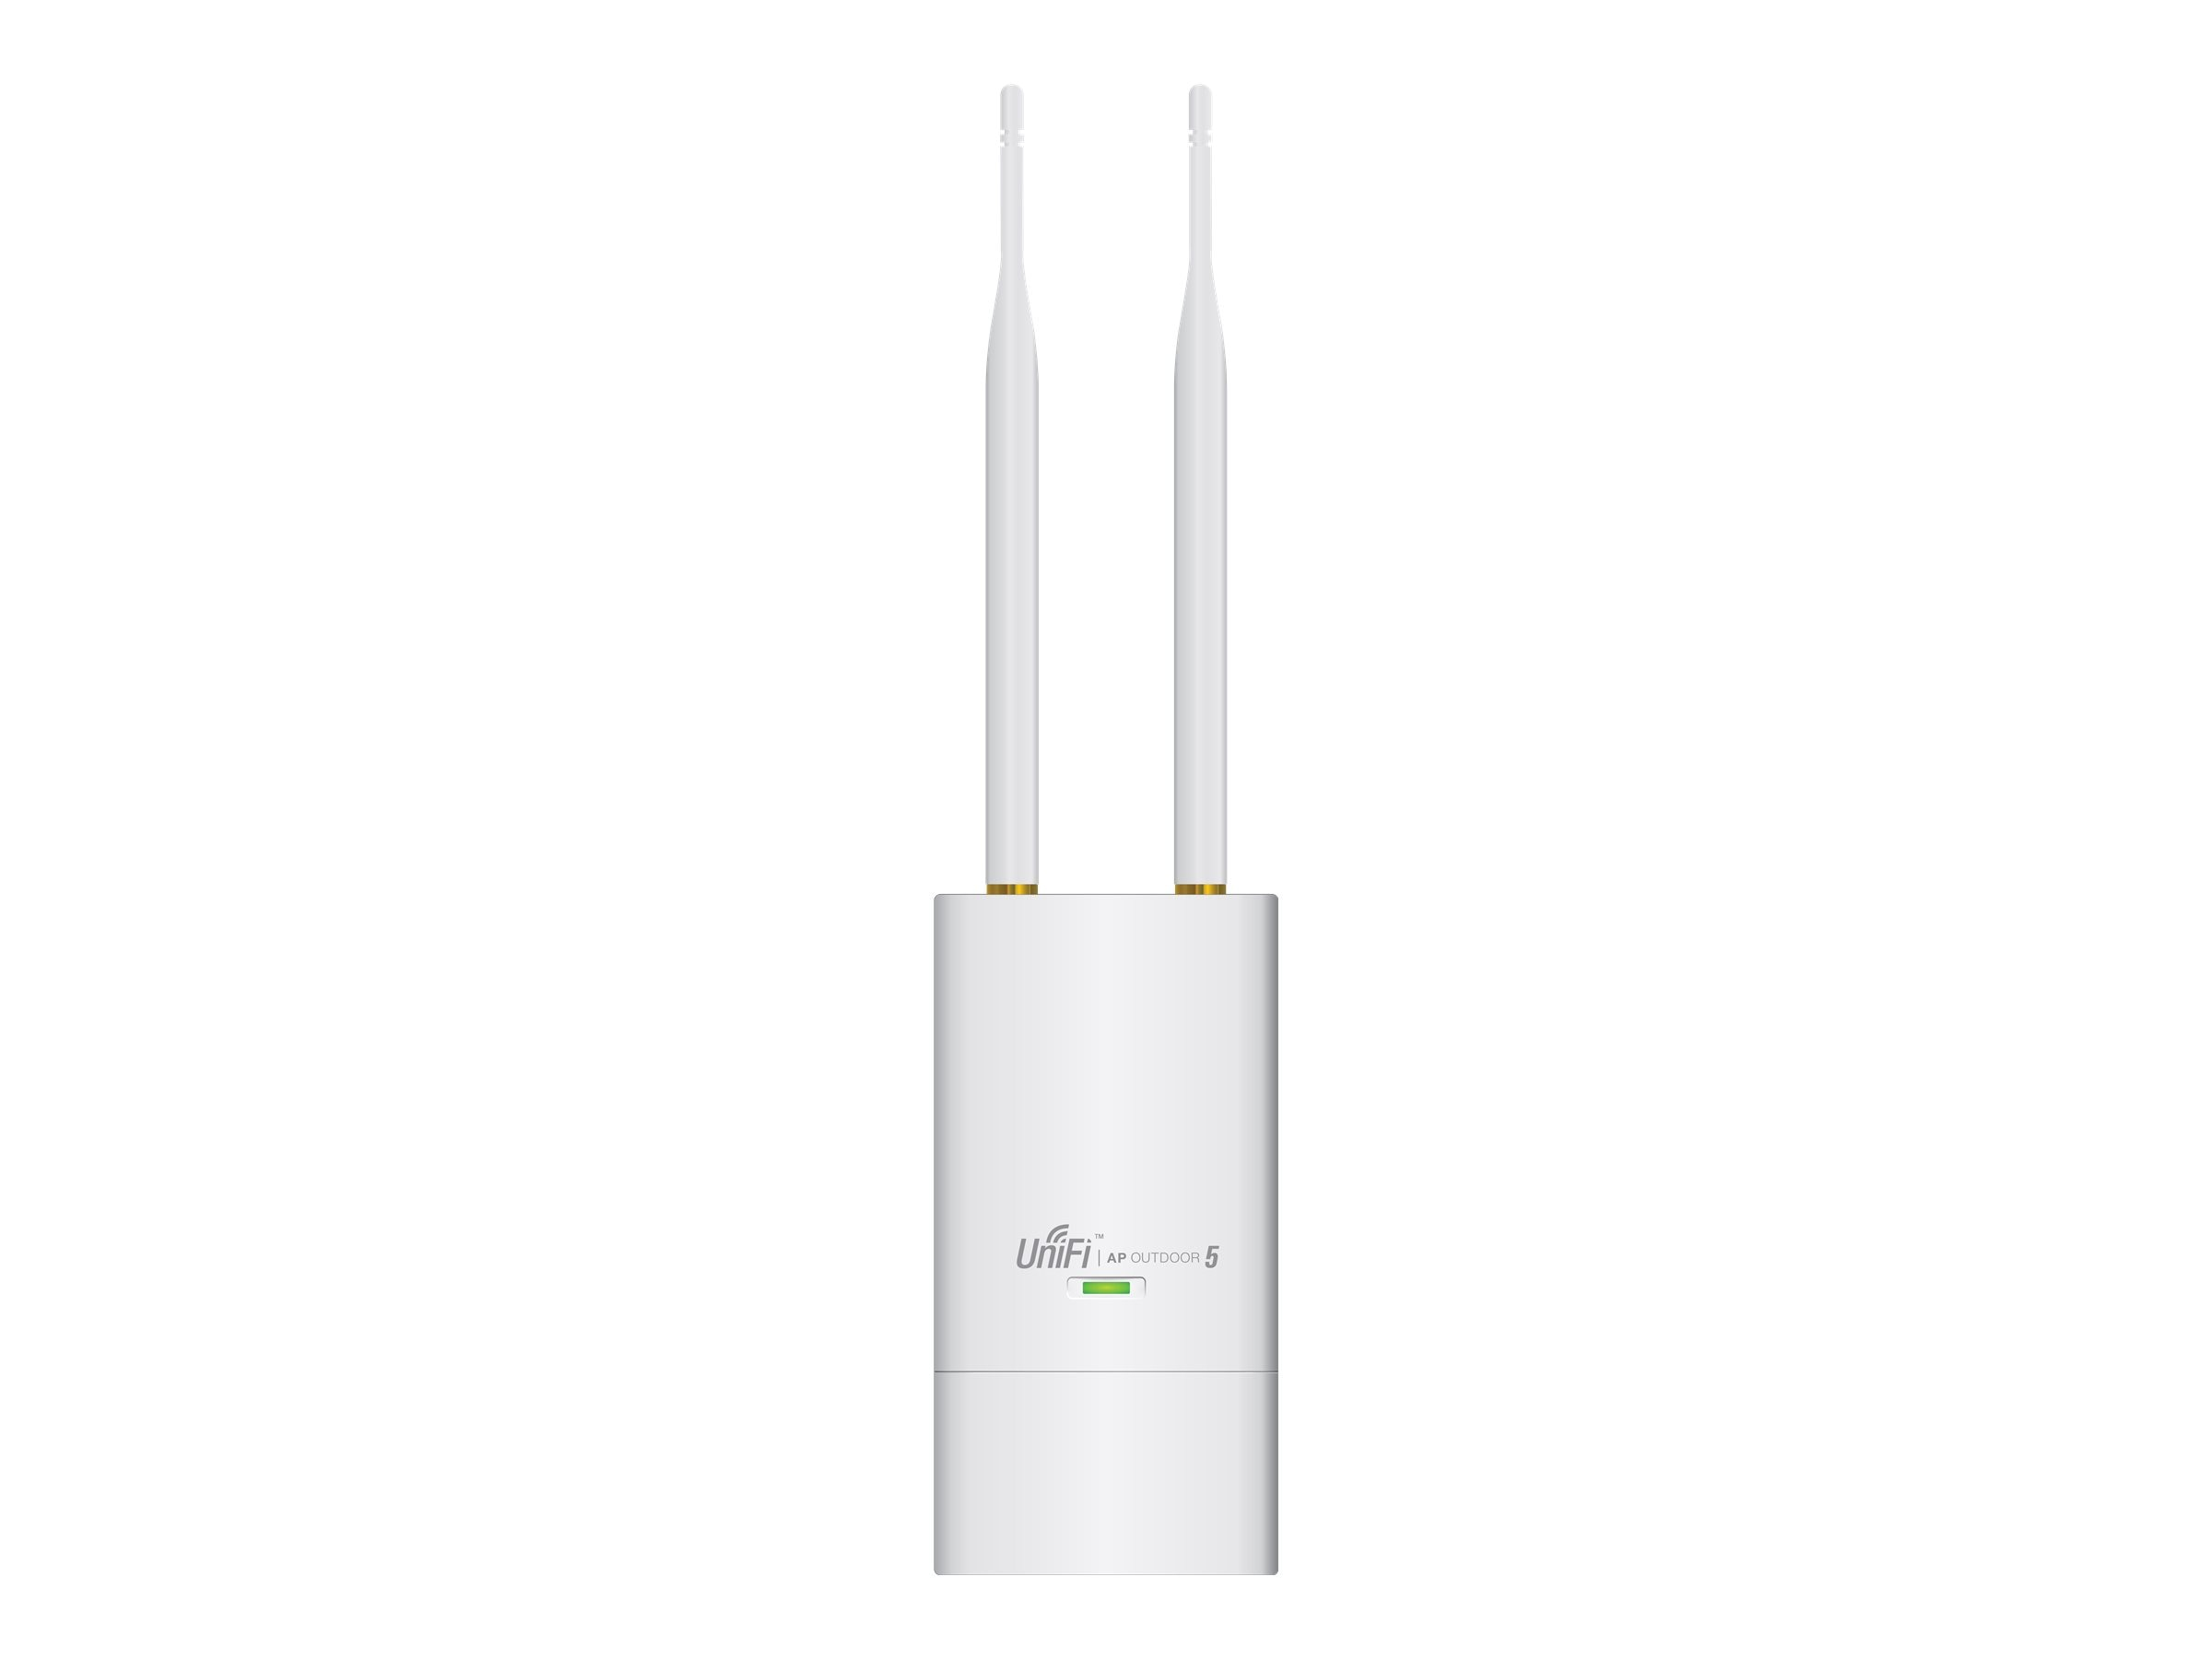 Ubiquiti Unified AP Outdoor 5GHz